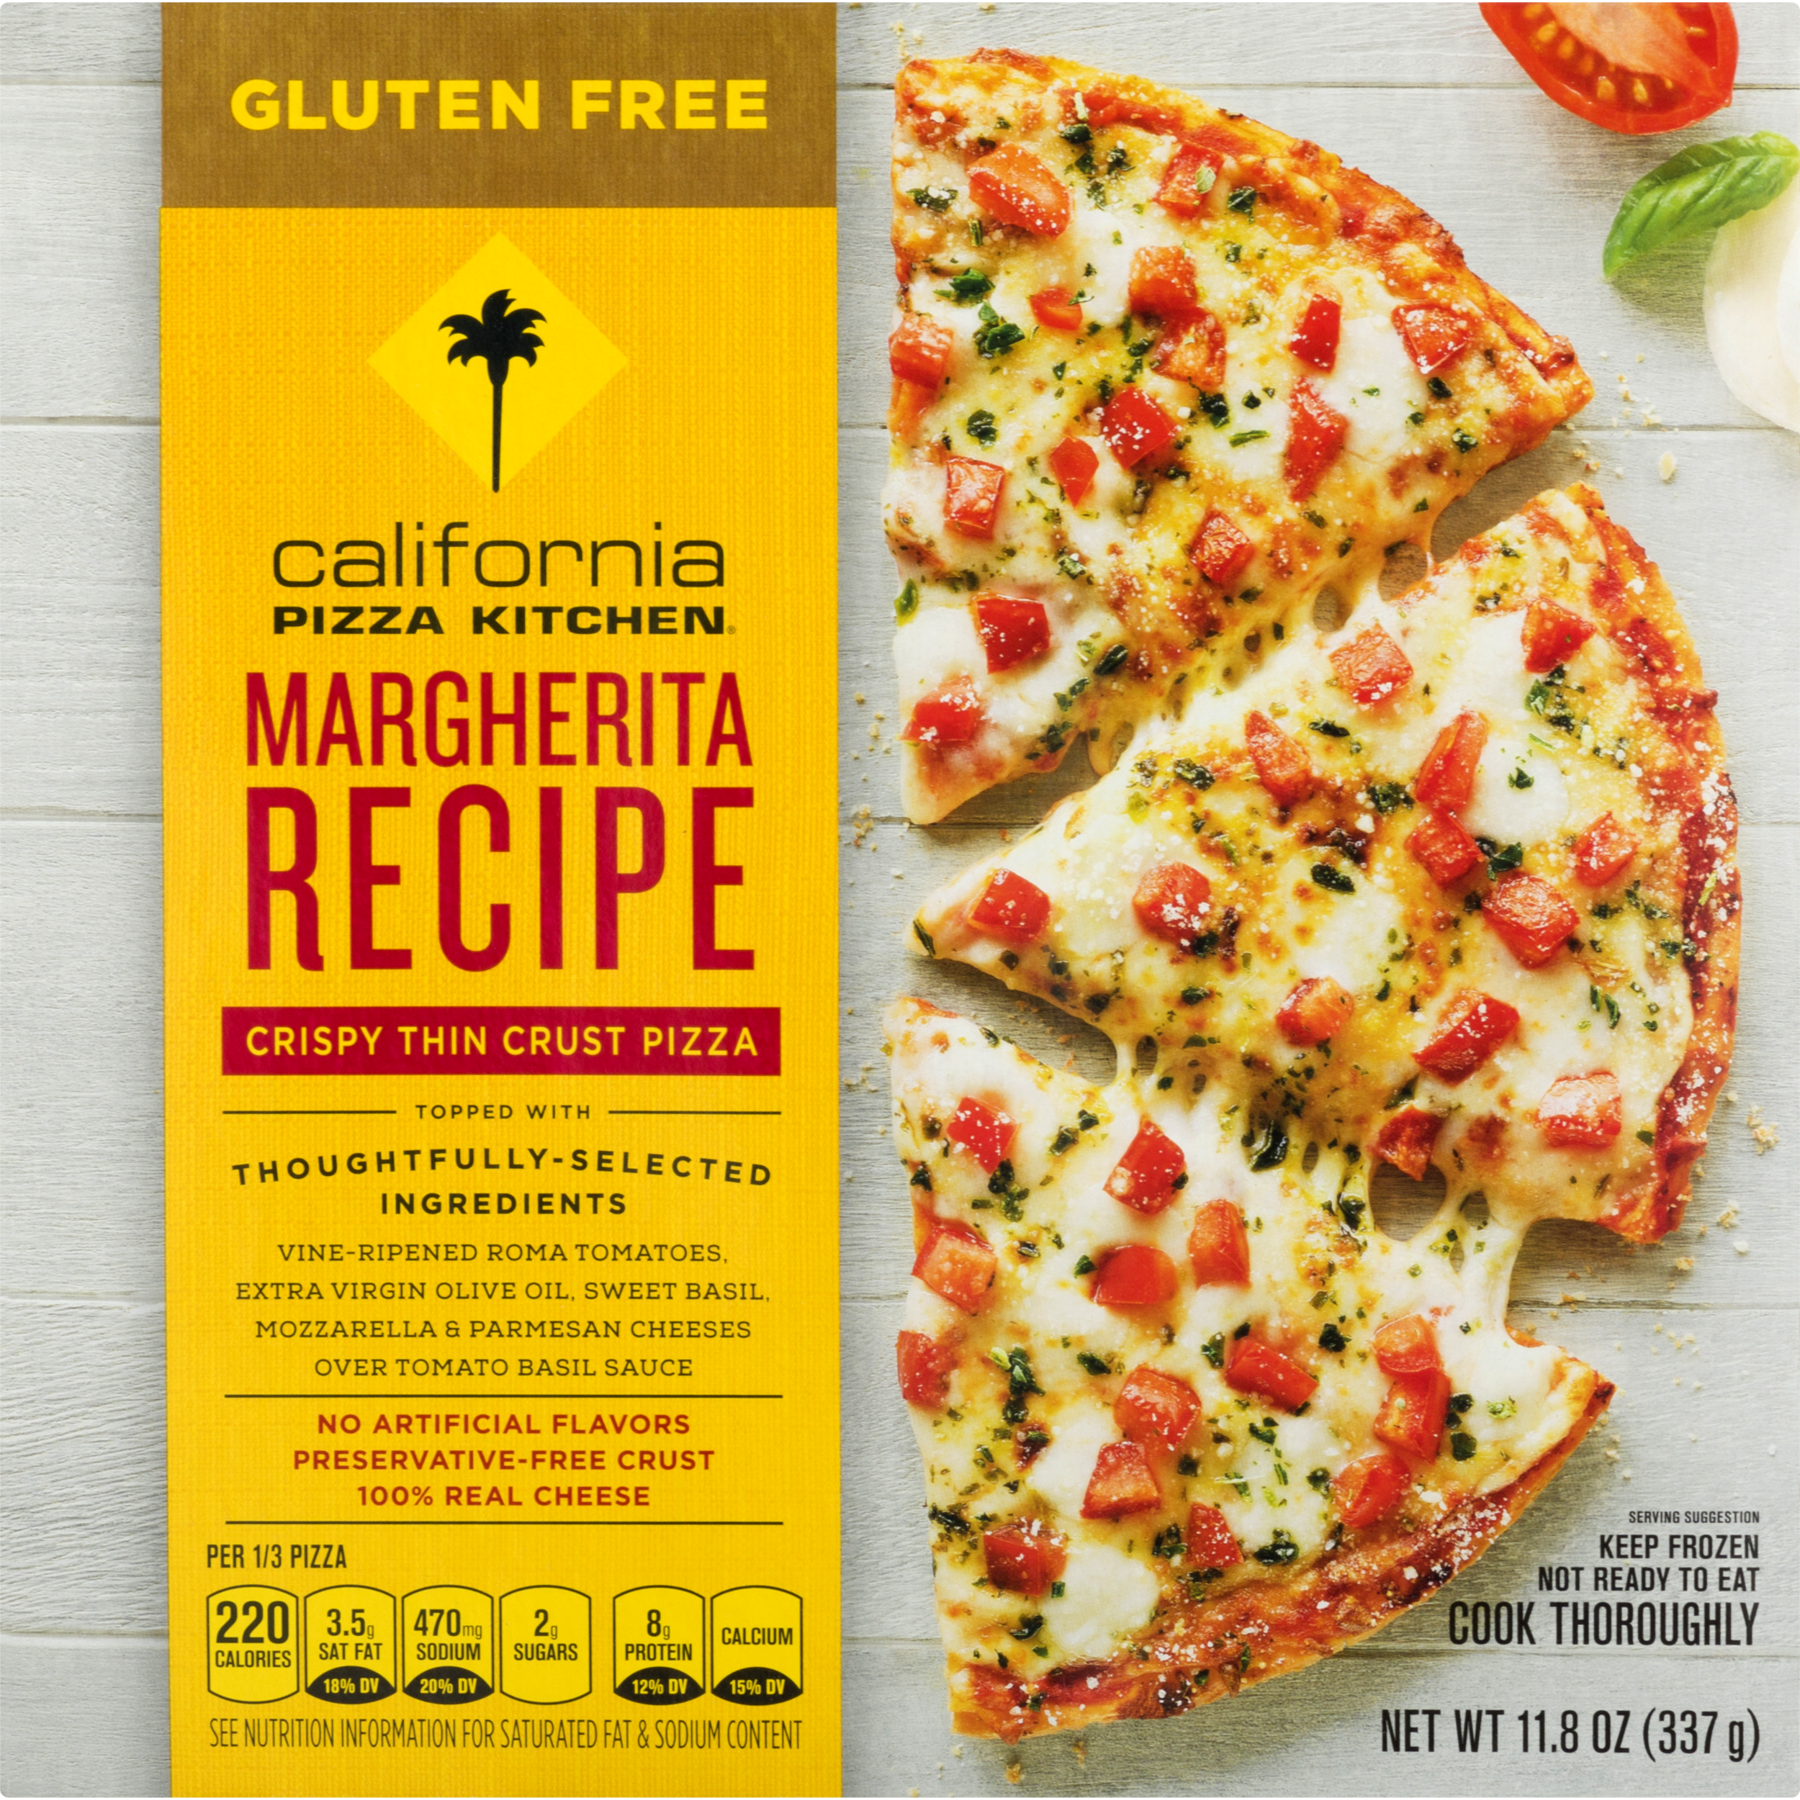 California Pizza Kitchen Gluten Free Dairy Free